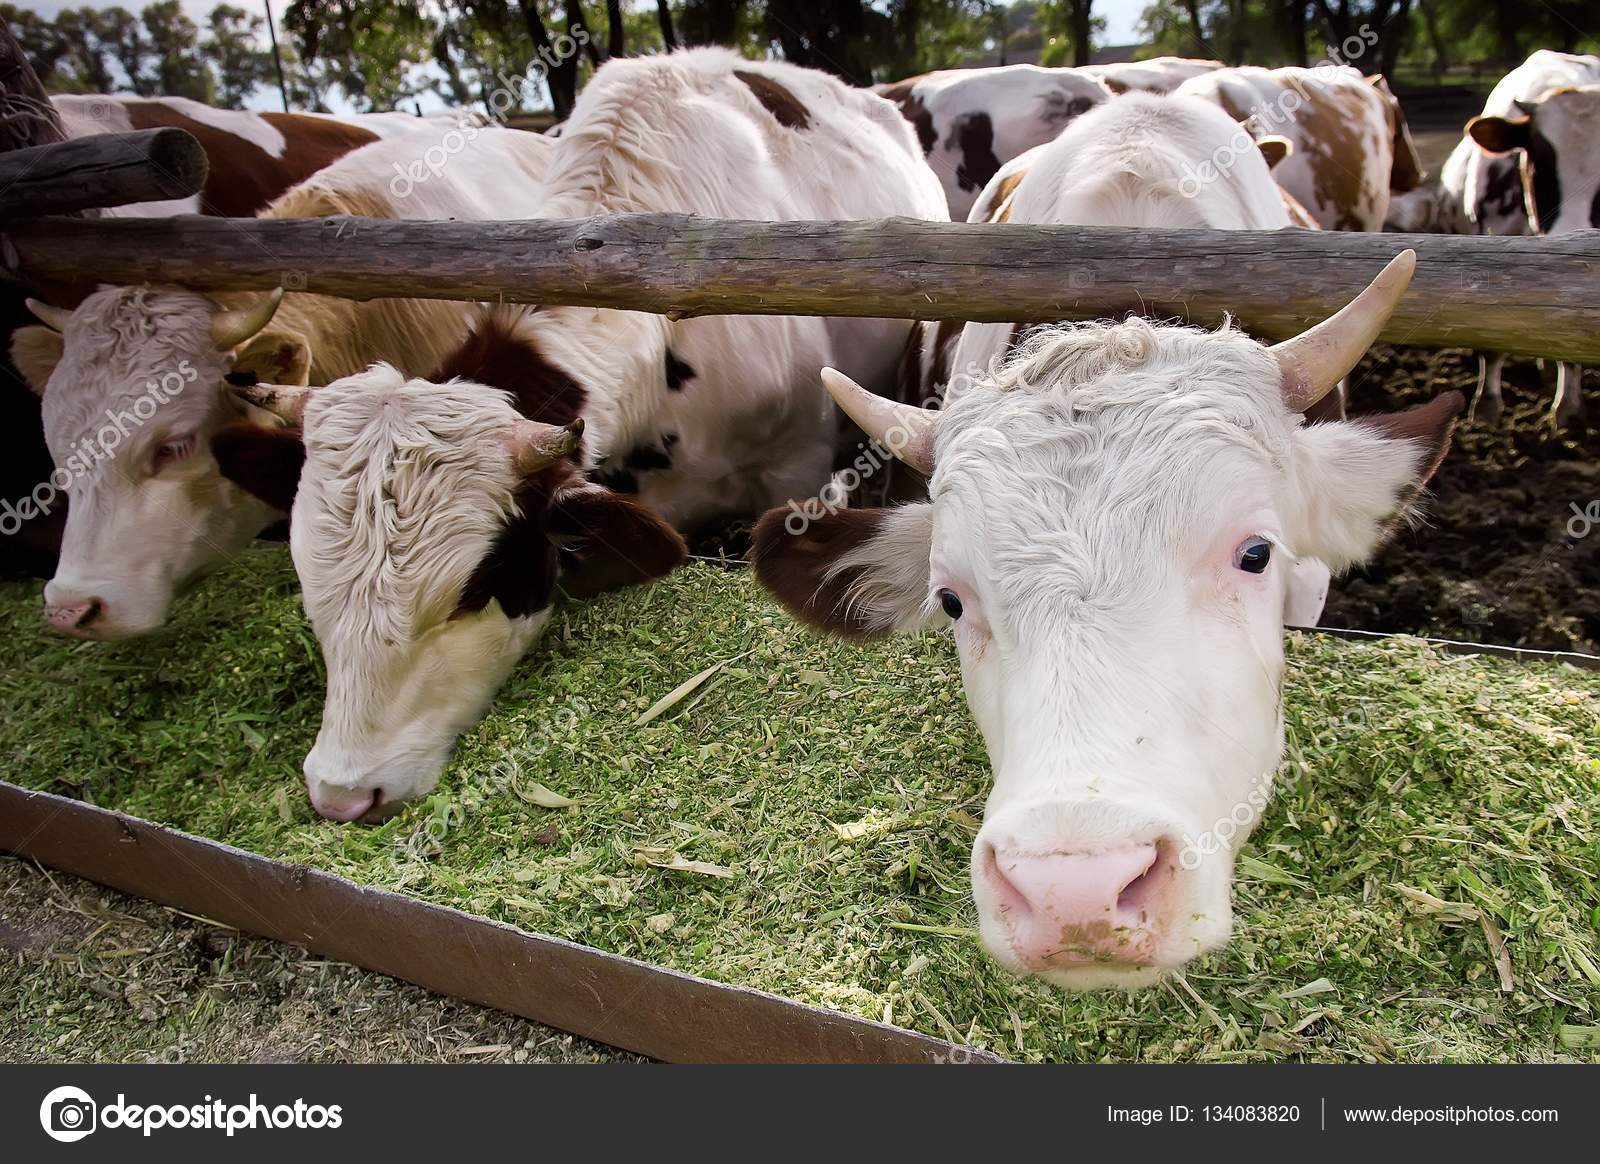 the funny dairy cows eat silage in a farm u2014 stock photo alisa24